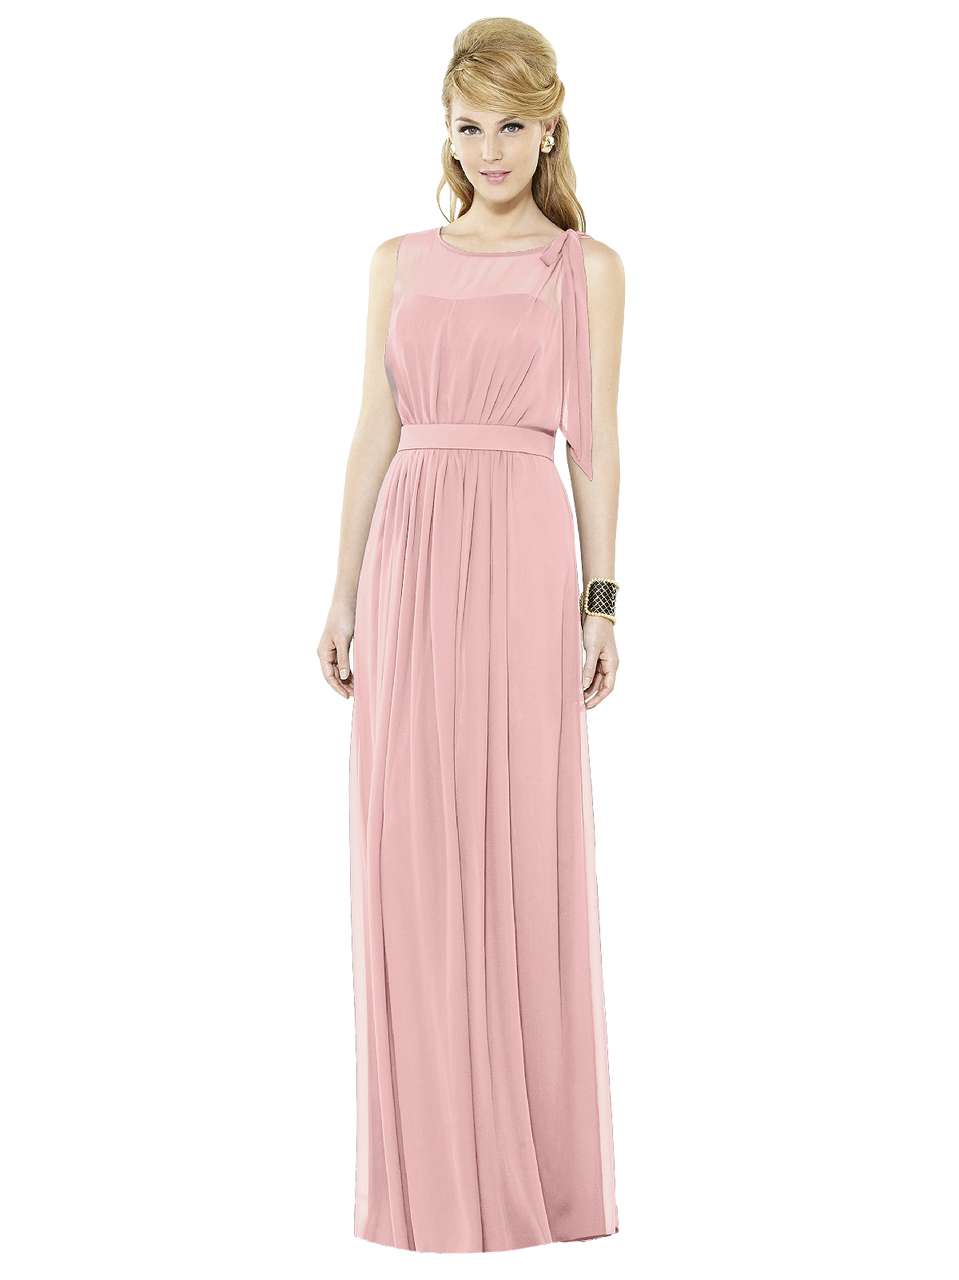 429e819b50a6 After Six Bridesmaids Style 6714 Full length sleeveless lux chiffon dress  w/ sheer top over